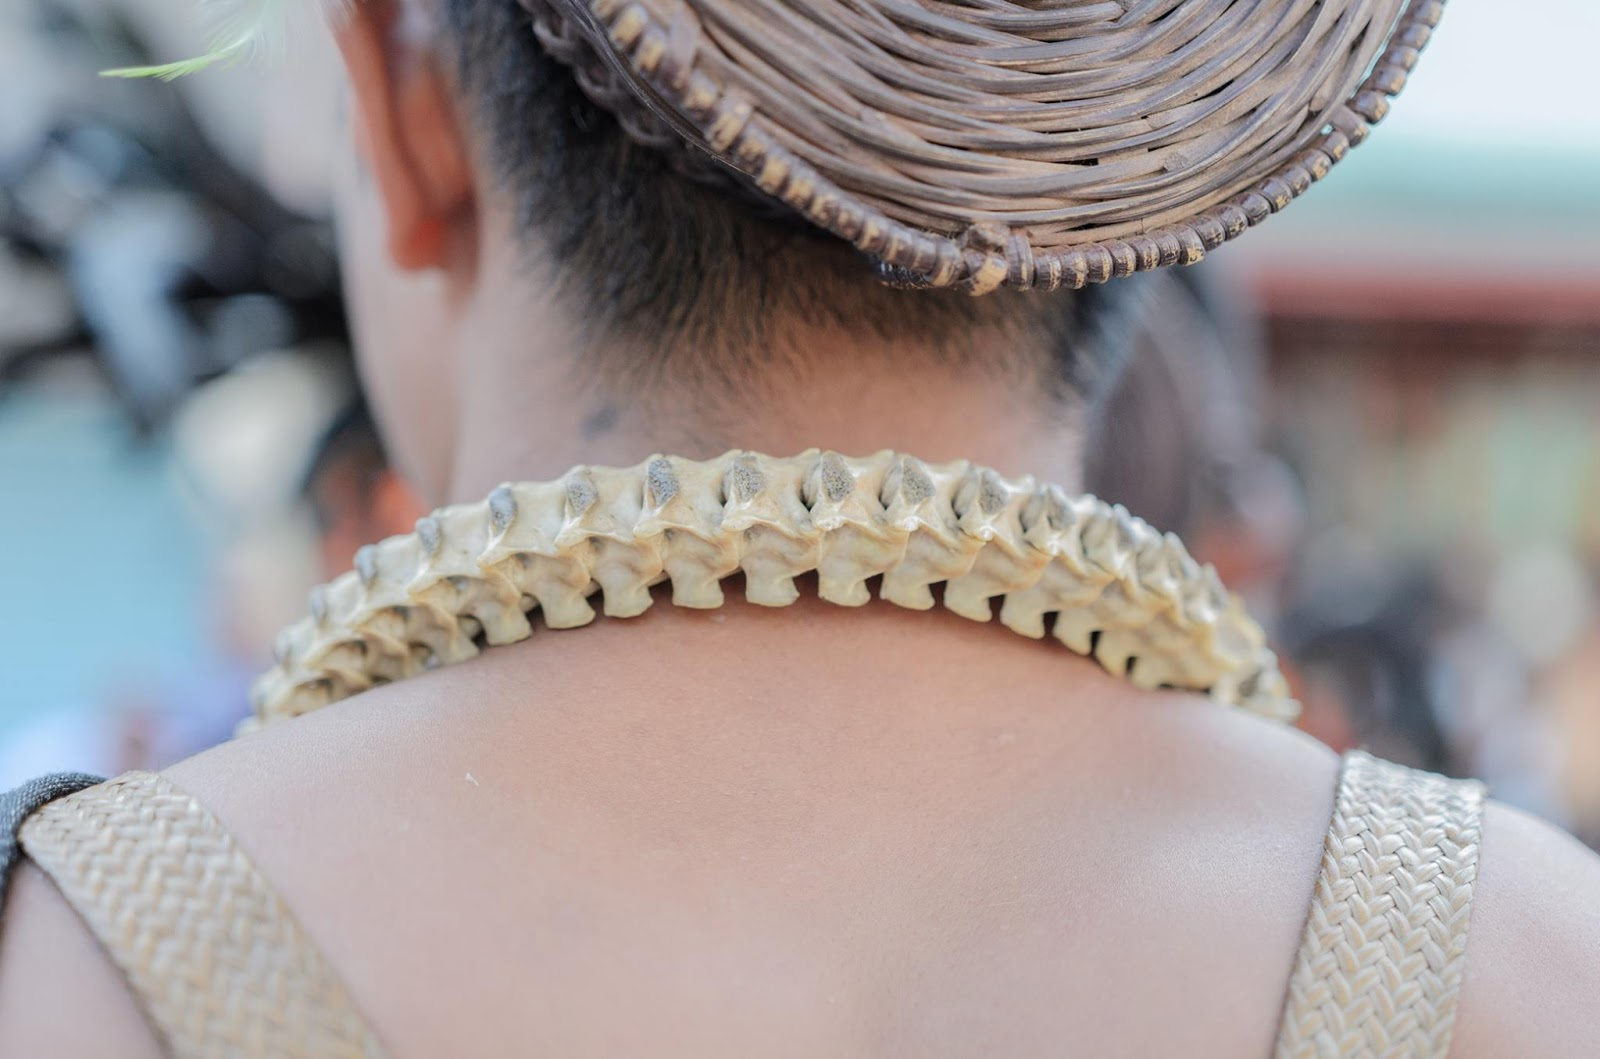 Literally Snake Cartilage Necklace Cultural Parade Participant